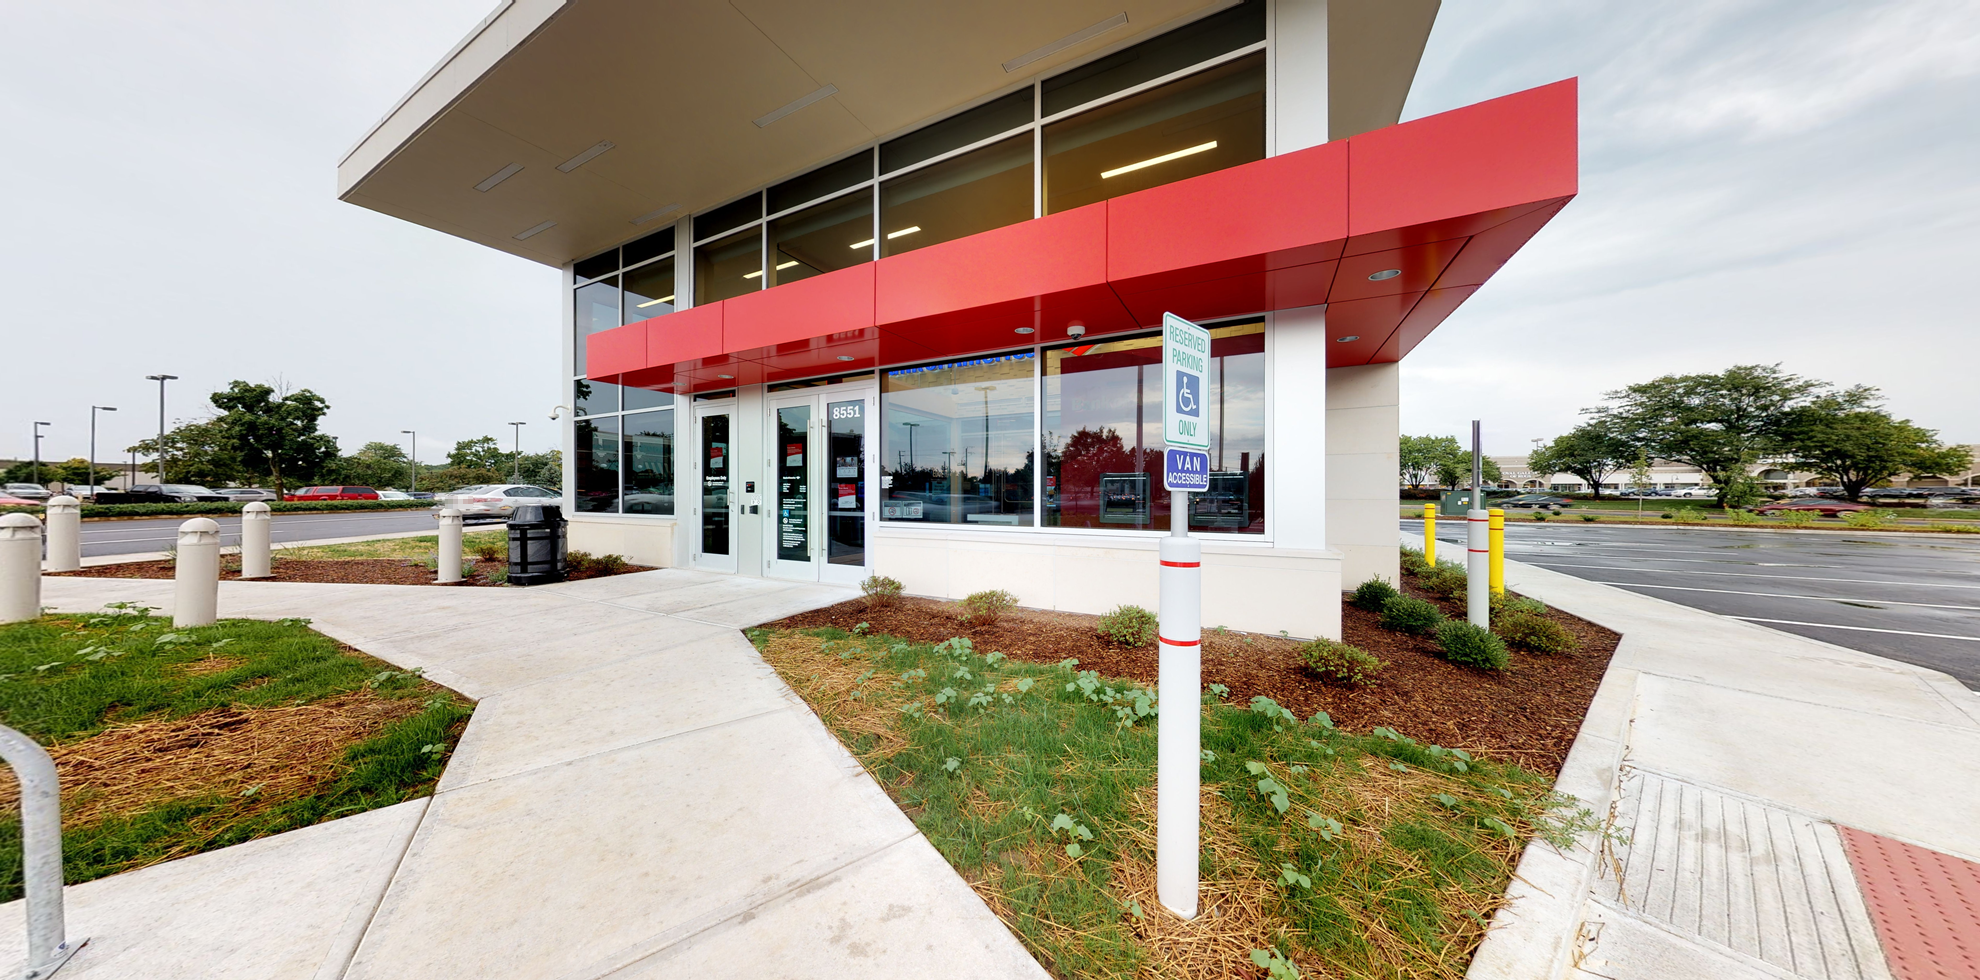 Bank of America financial center with drive-thru ATM | 8551 River Rd, Indianapolis, IN 46240